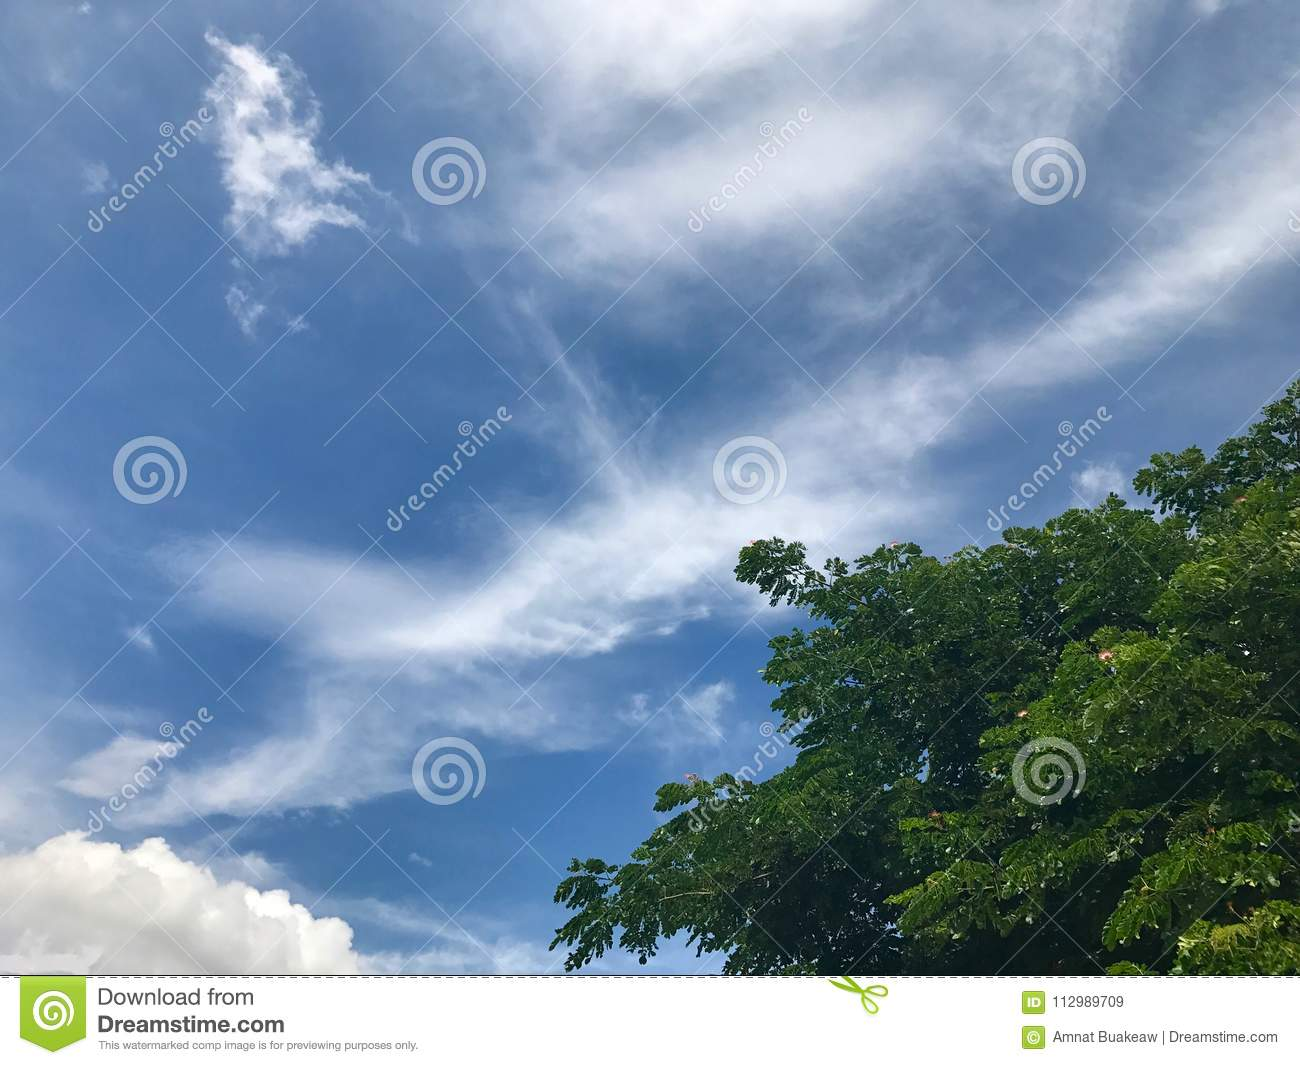 Sky and Tree nature with Bottom right corner